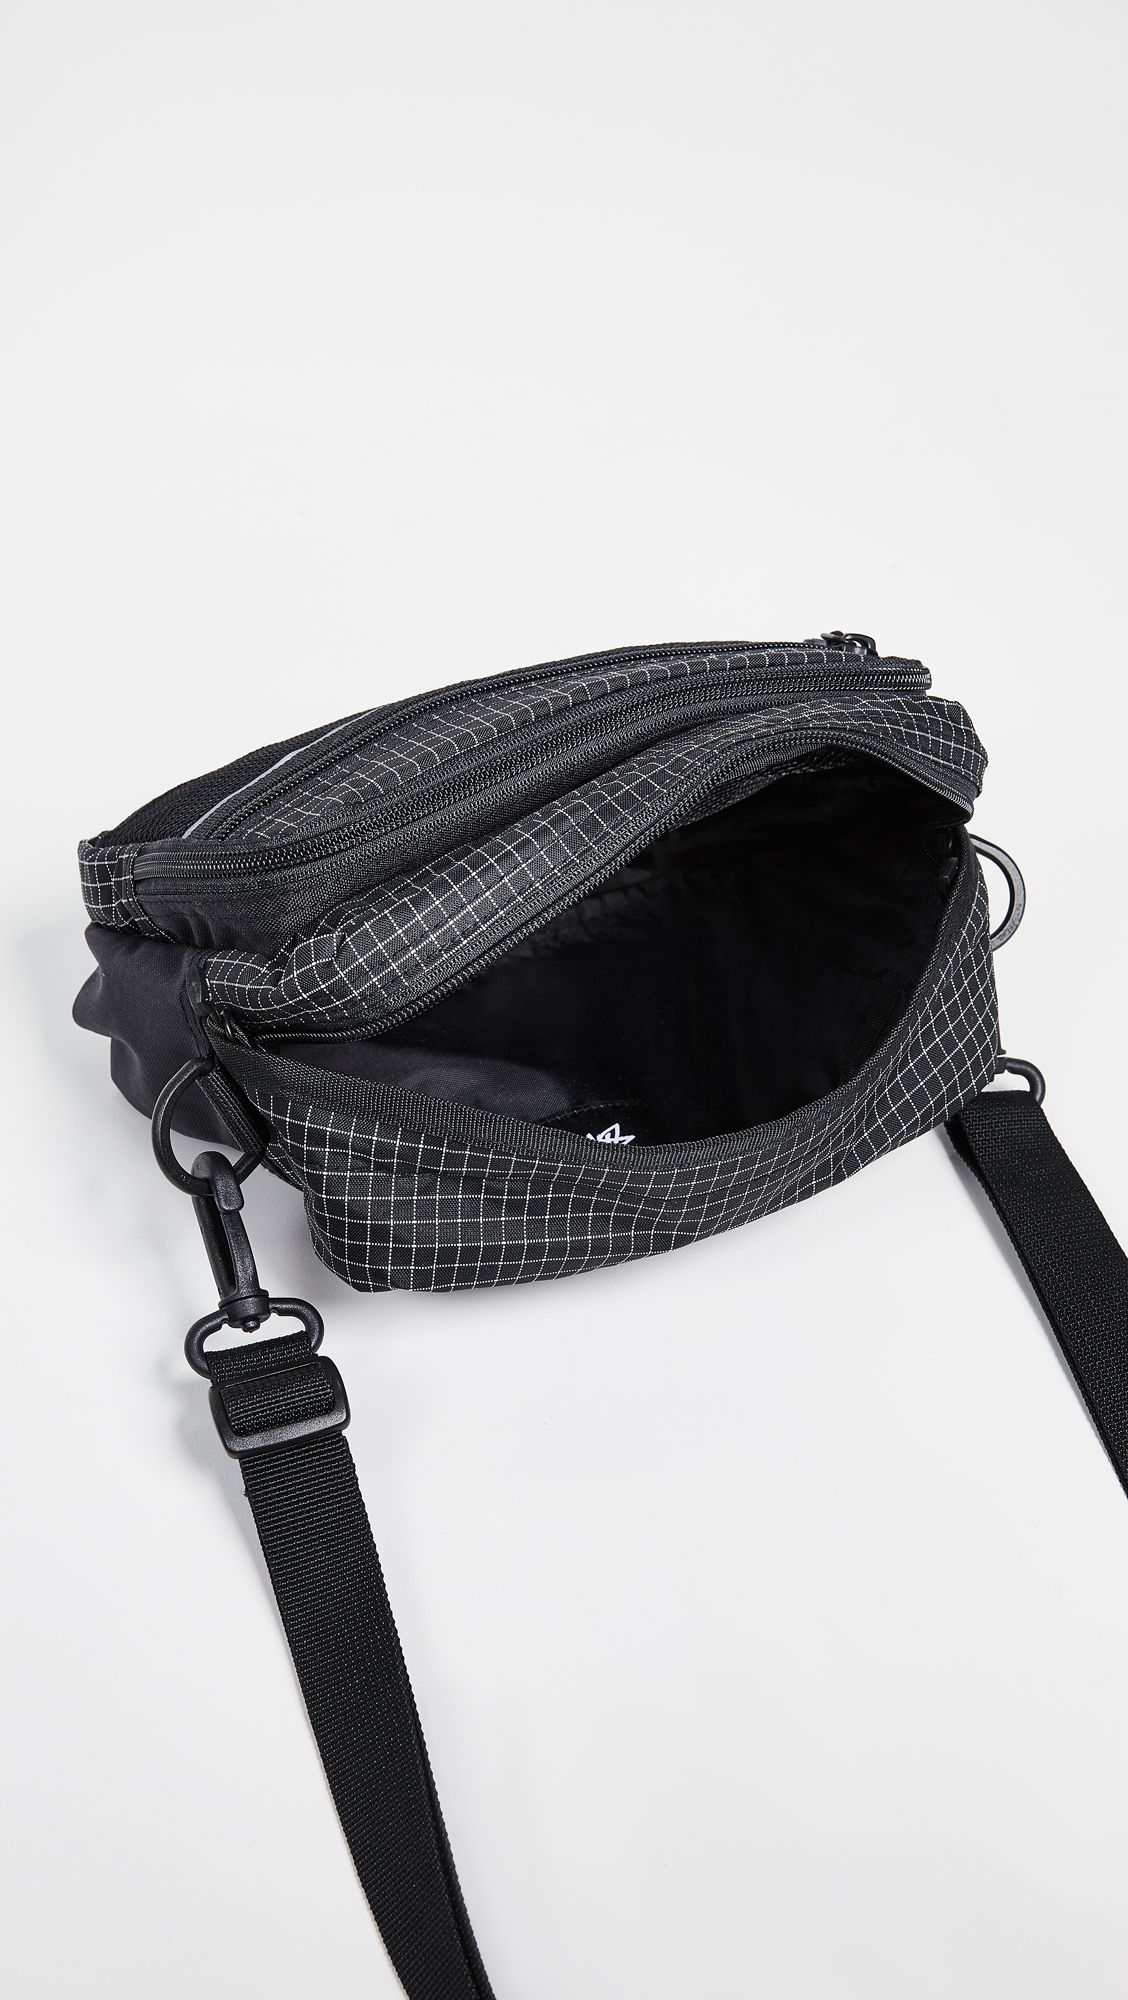 42575f53da Stussy Ripstop Nylon Shoulder Bag